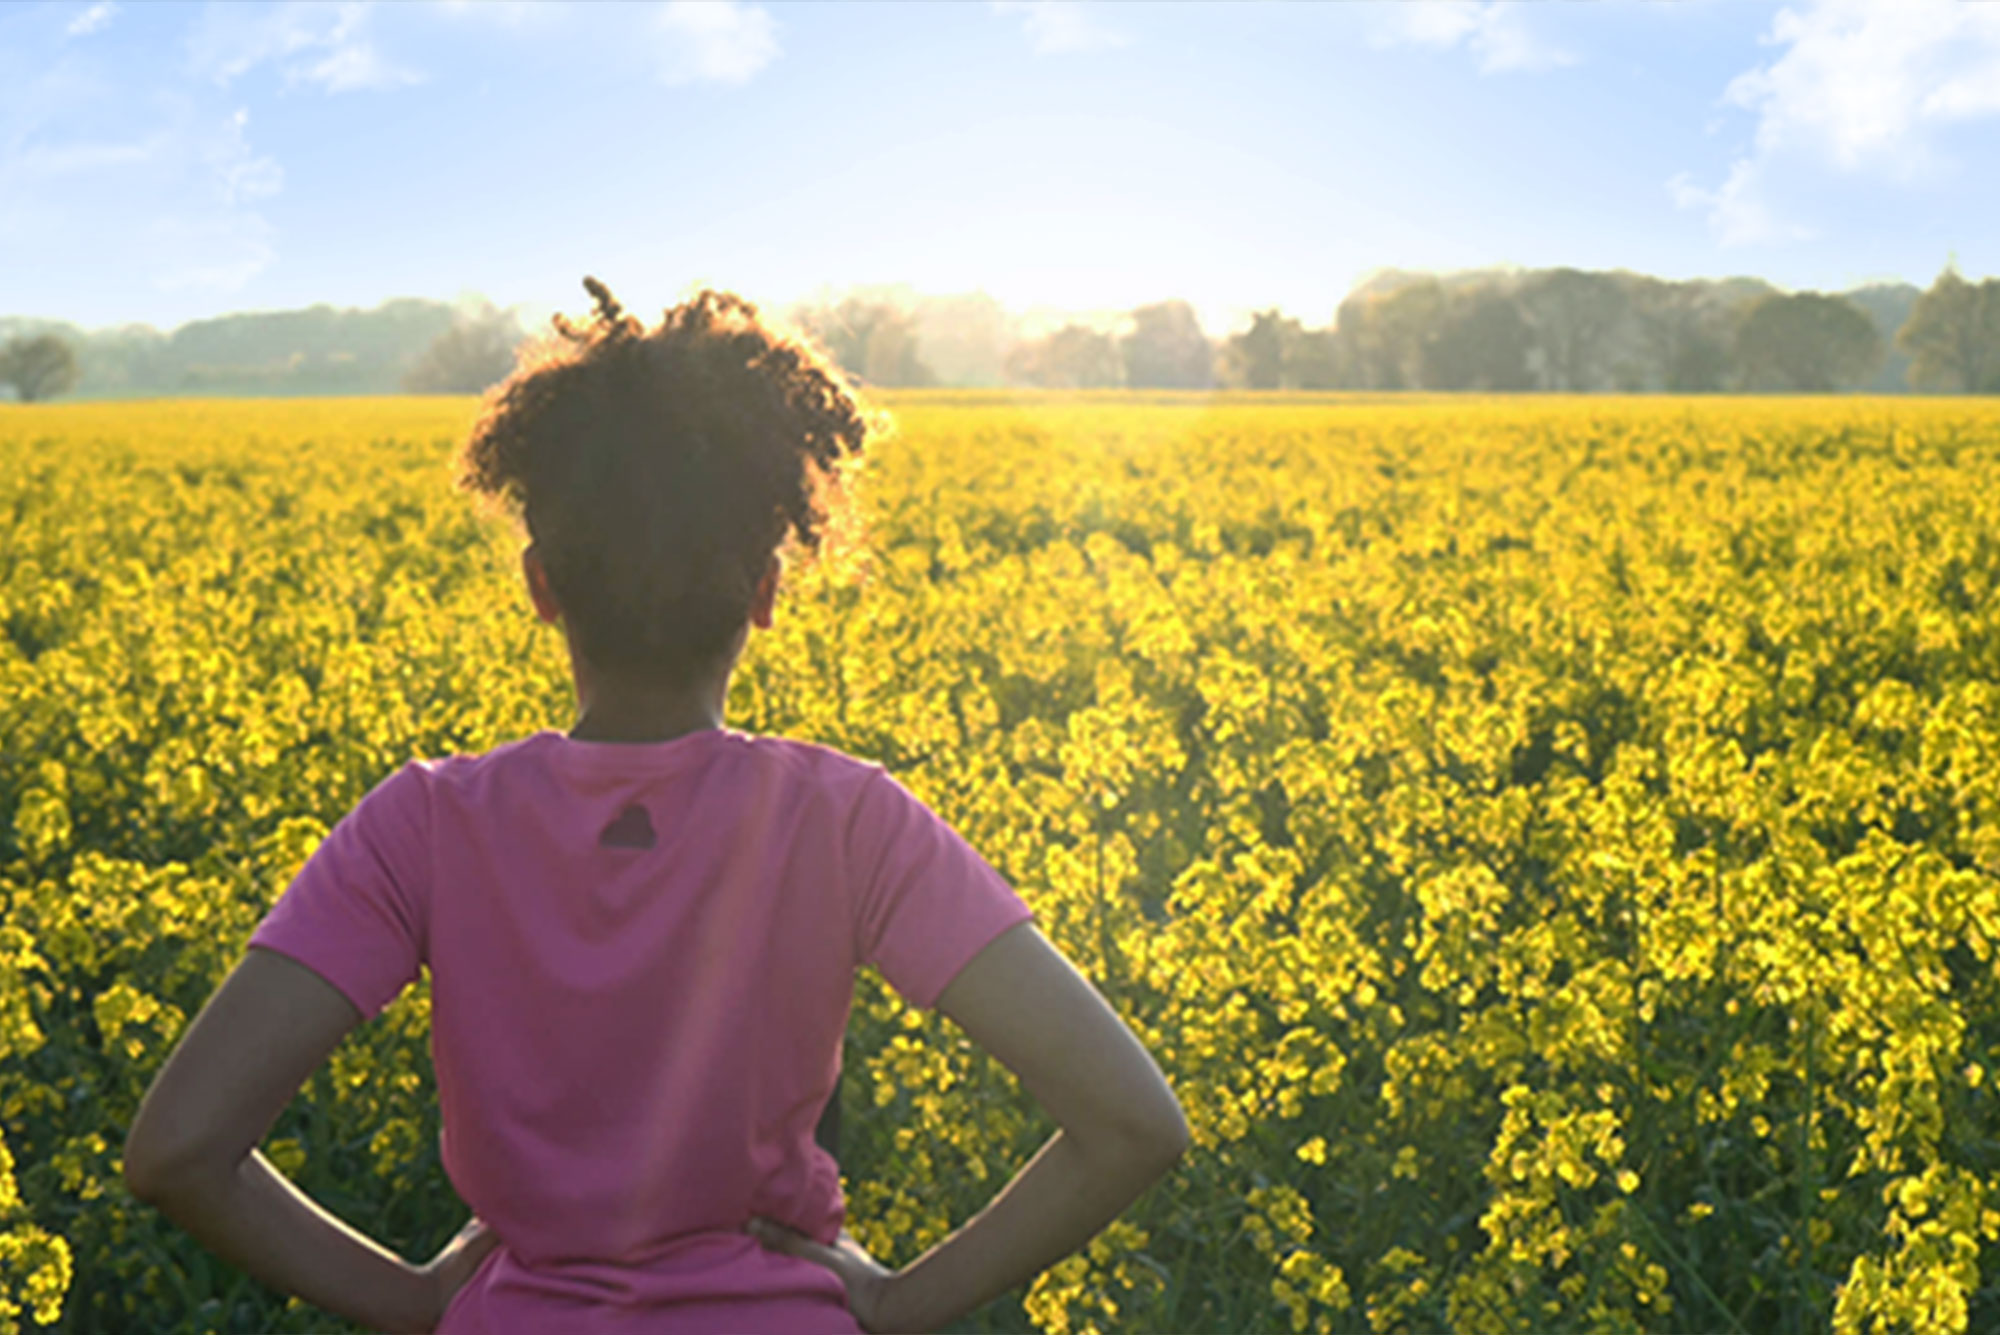 Girl standing in field of sunflowers